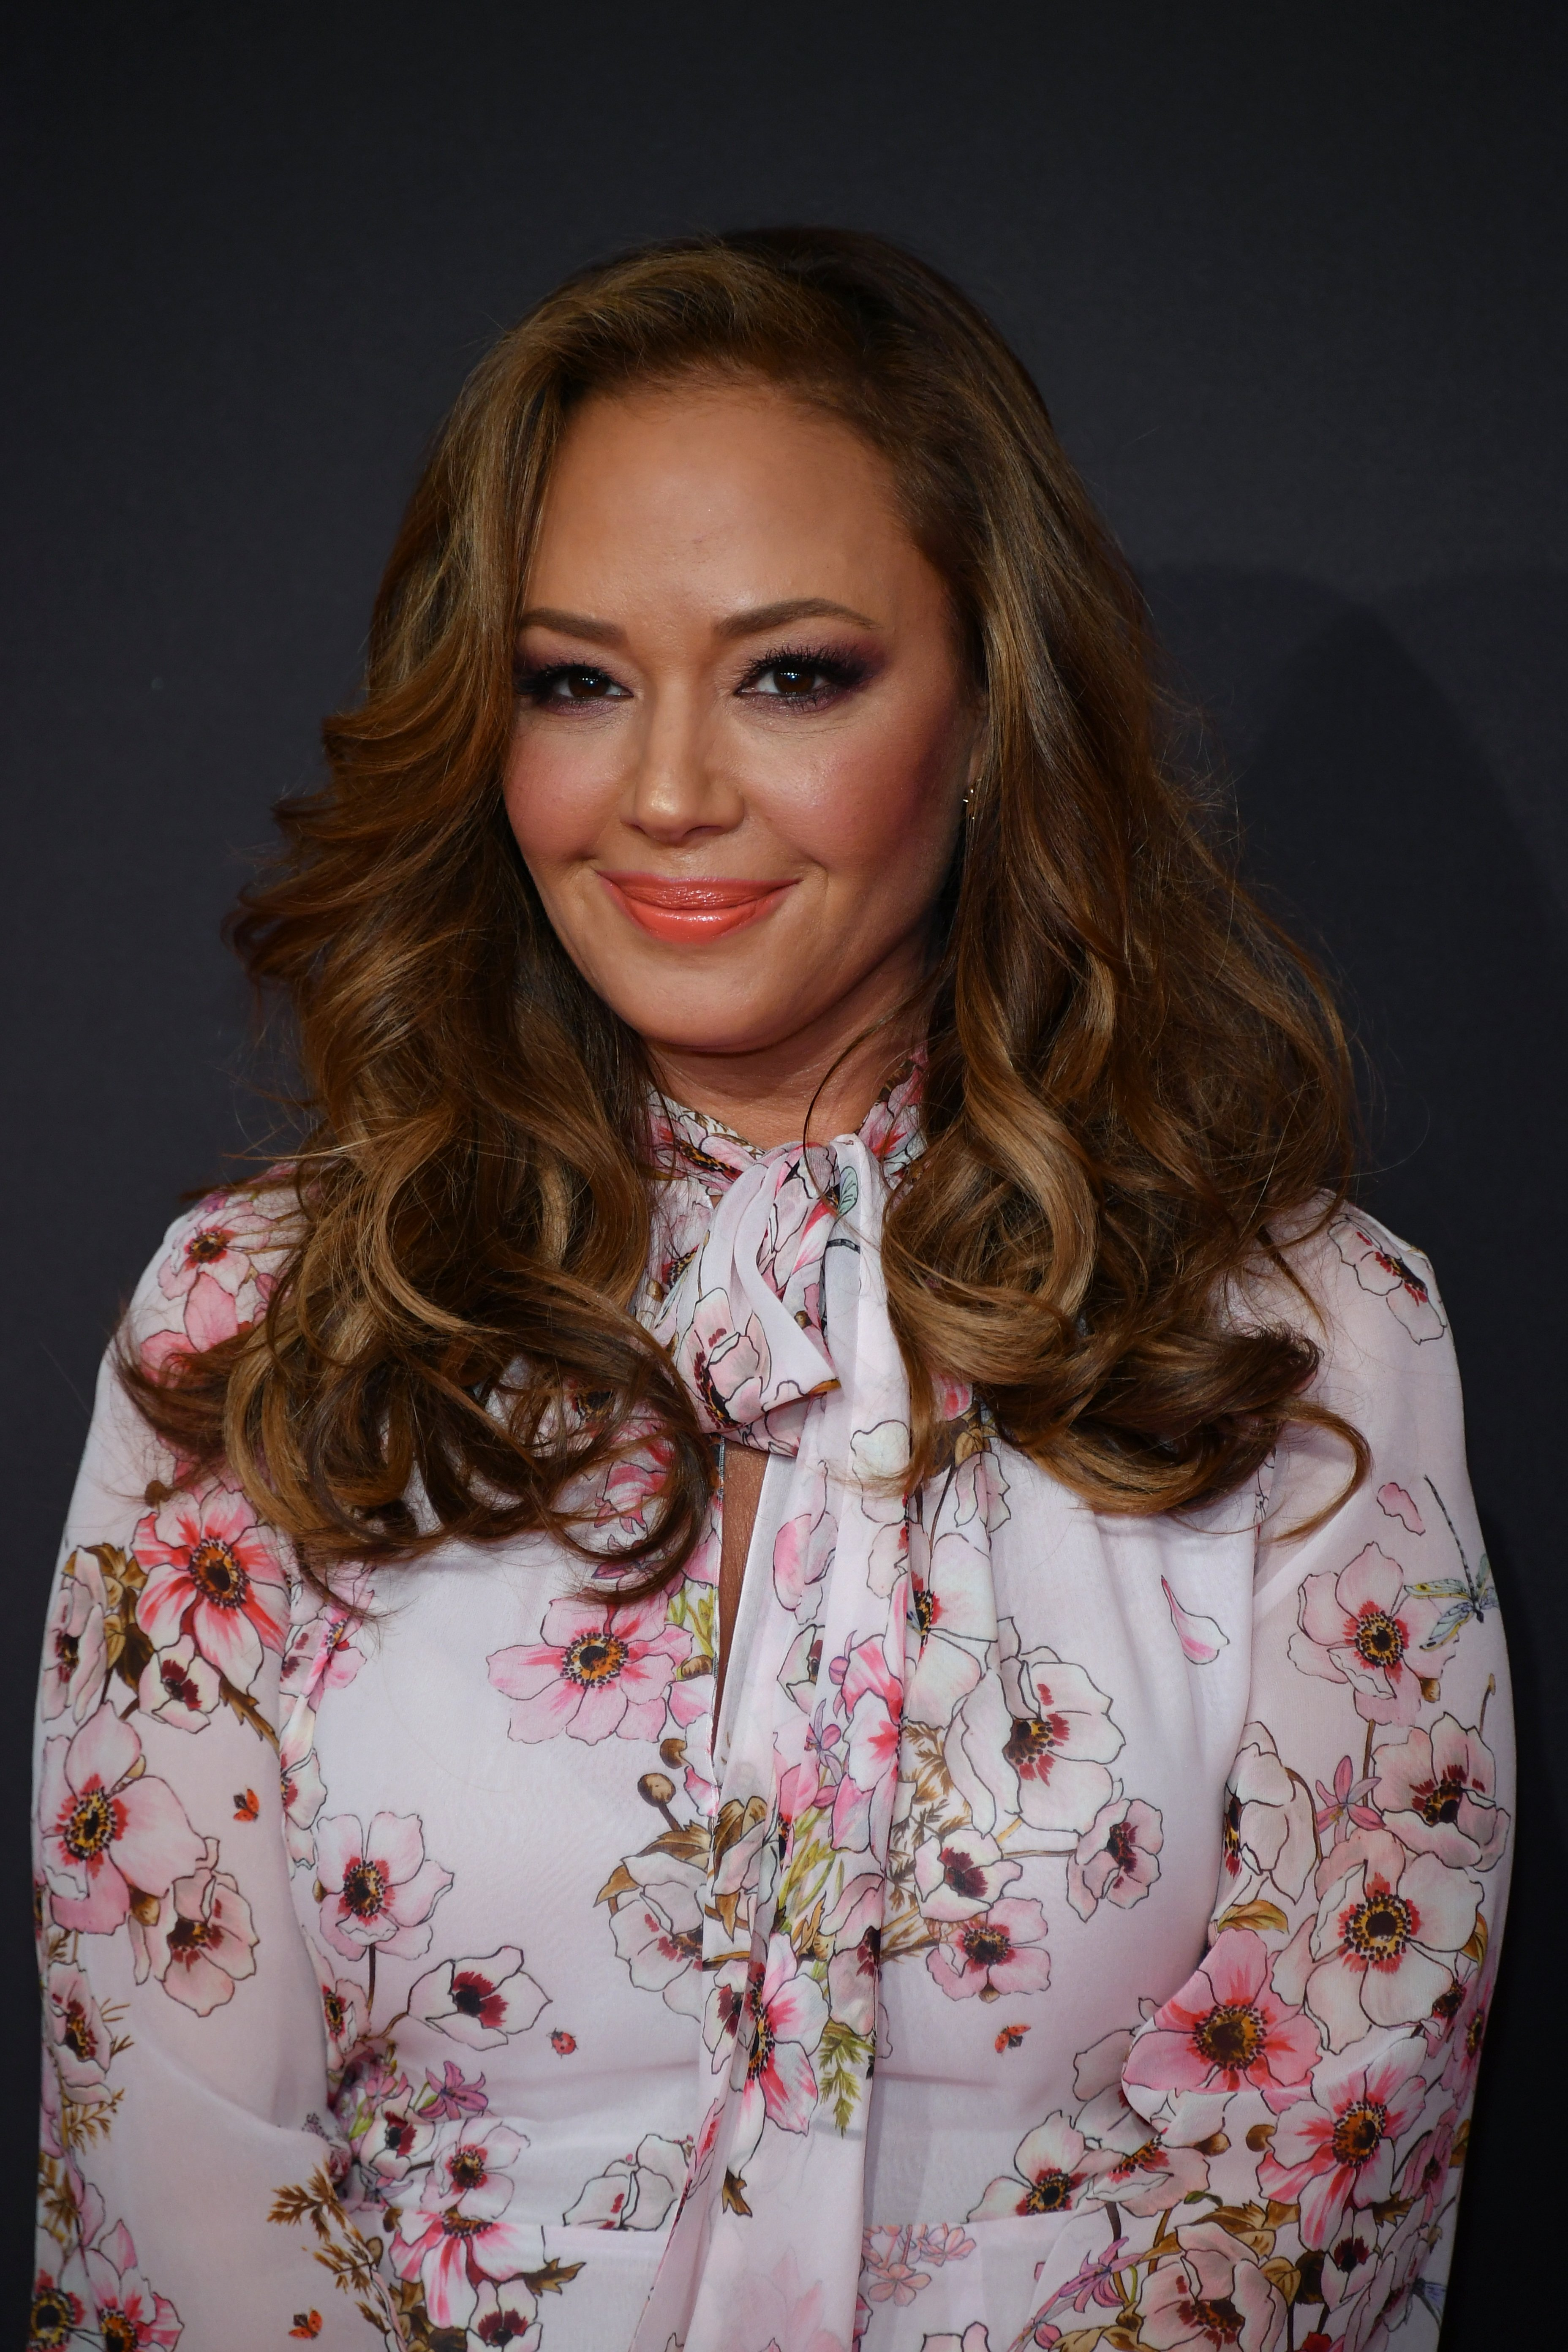 Leah Remini attends day 1 of the 2017 Creative Arts Emmy Awards at Microsoft Theater on September 9, 2017 in Los Angeles, California. | Photo: GettyImages